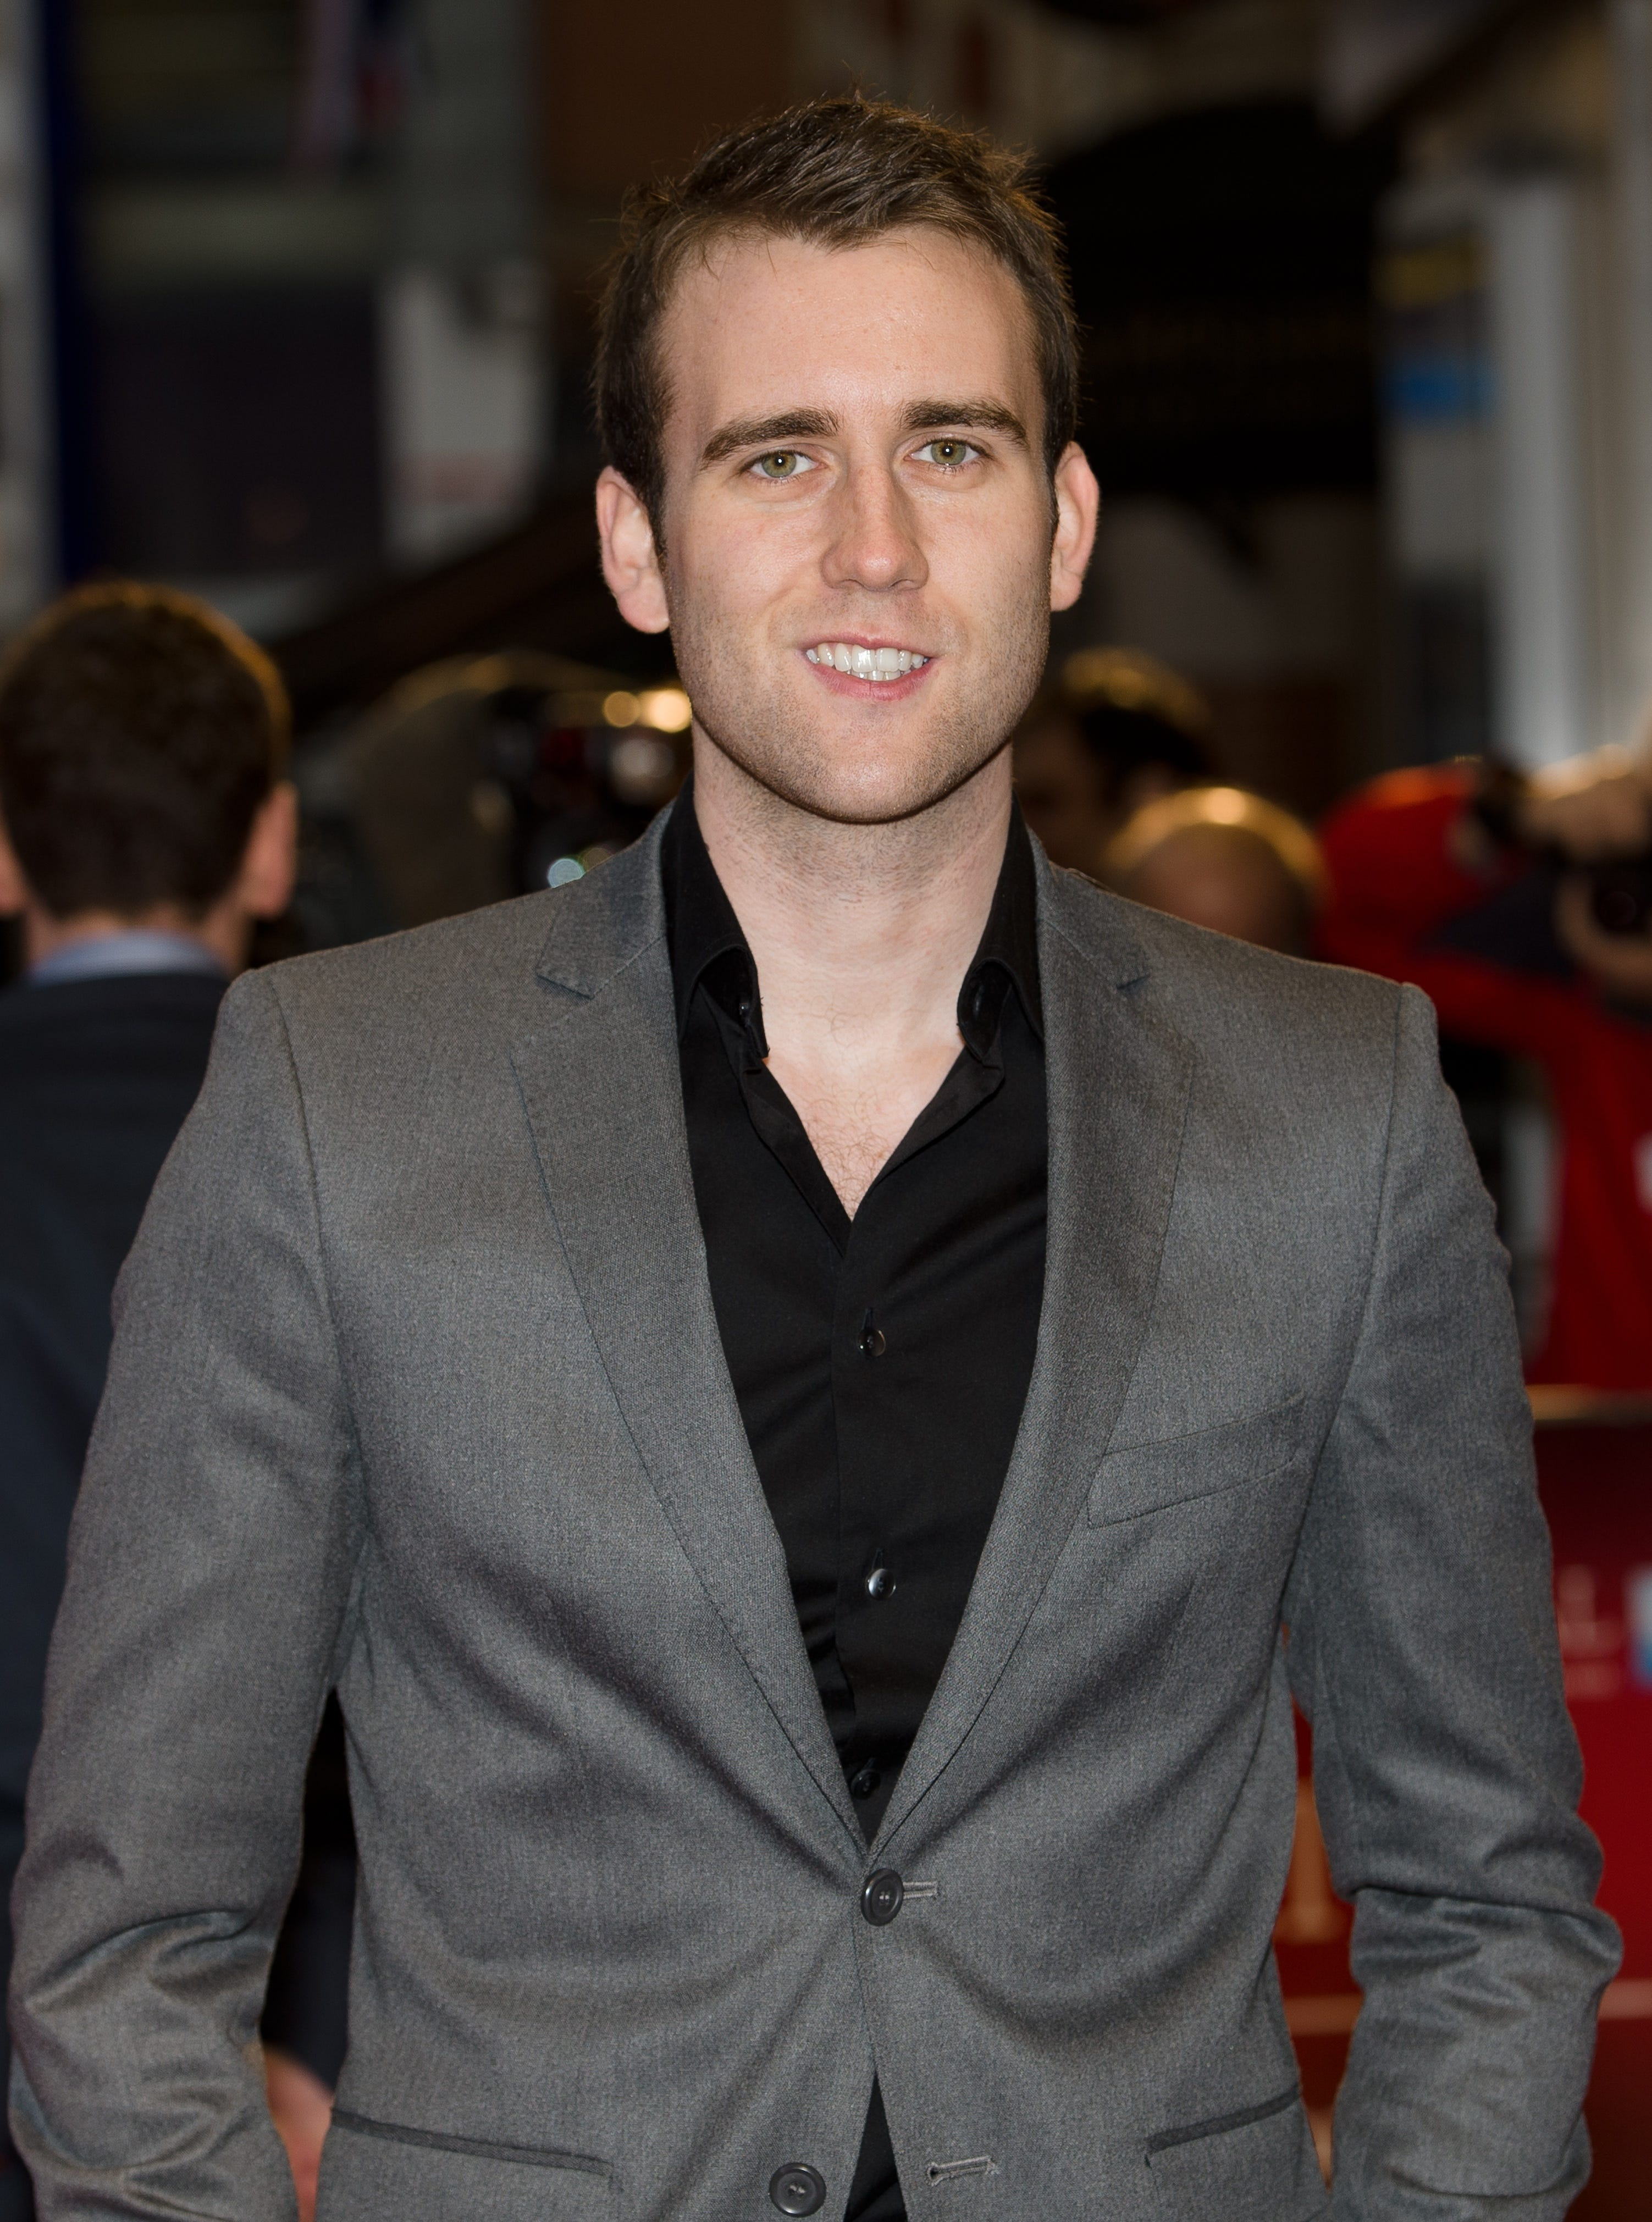 matthew lewis agematthew lewis and tom felton, matthew lewis the monk, matthew lewis harry potter, matthew lewis before, matthew lewis fb, matthew lewis gallery, matthew lewis site, matthew lewis hugo boss, matthew lewis dating who, matthew lewis xtasis, matthew lewis wdw, matthew lewis ear, matthew lewis wiki, matthew lewis fansite, matthew lewis music video, matthew lewis photos, matthew lewis phone number, matthew lewis age, matthew lewis wife, matthew lewis surgery